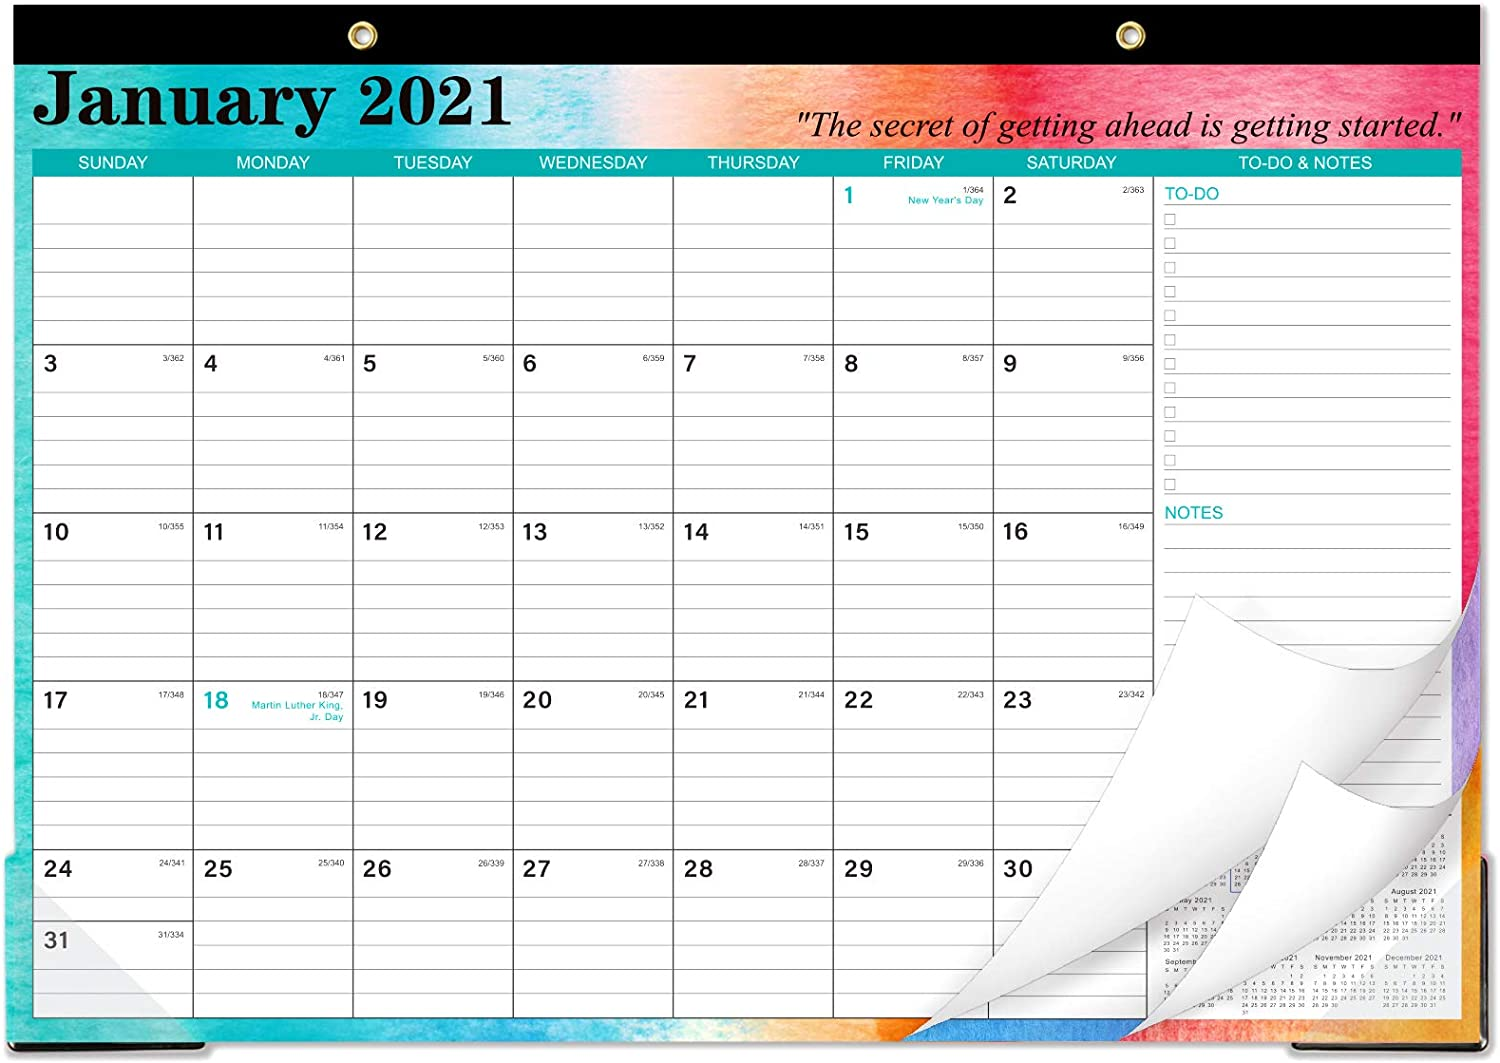 """2021-2022 Desk Calendar - Desk Calendar 2021-2022 with To-do List & Notes Content and Julian Date, Jan 2021 - Jun 2022, 17""""x 12"""", Thick Paper with Colorful Background Pattern"""